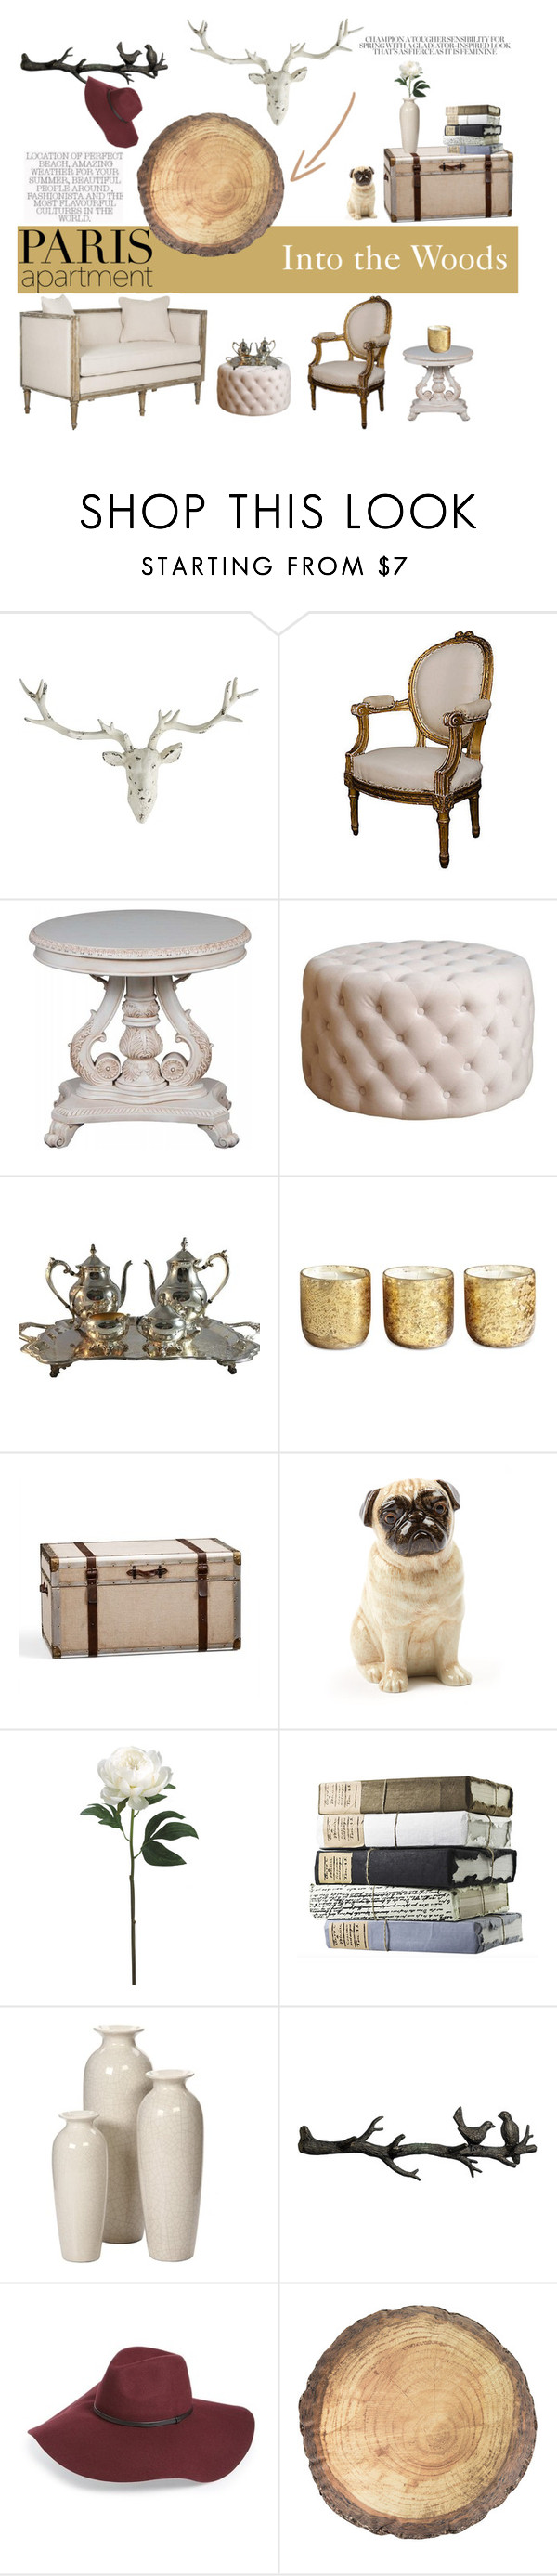 """""""Into the Woods"""" by missmodel13 ❤ liked on Polyvore featuring interior, interiors, interior design, home, home decor, interior decorating, Pier 1 Imports, Abbyson Living, Reed & Barton and Illume"""